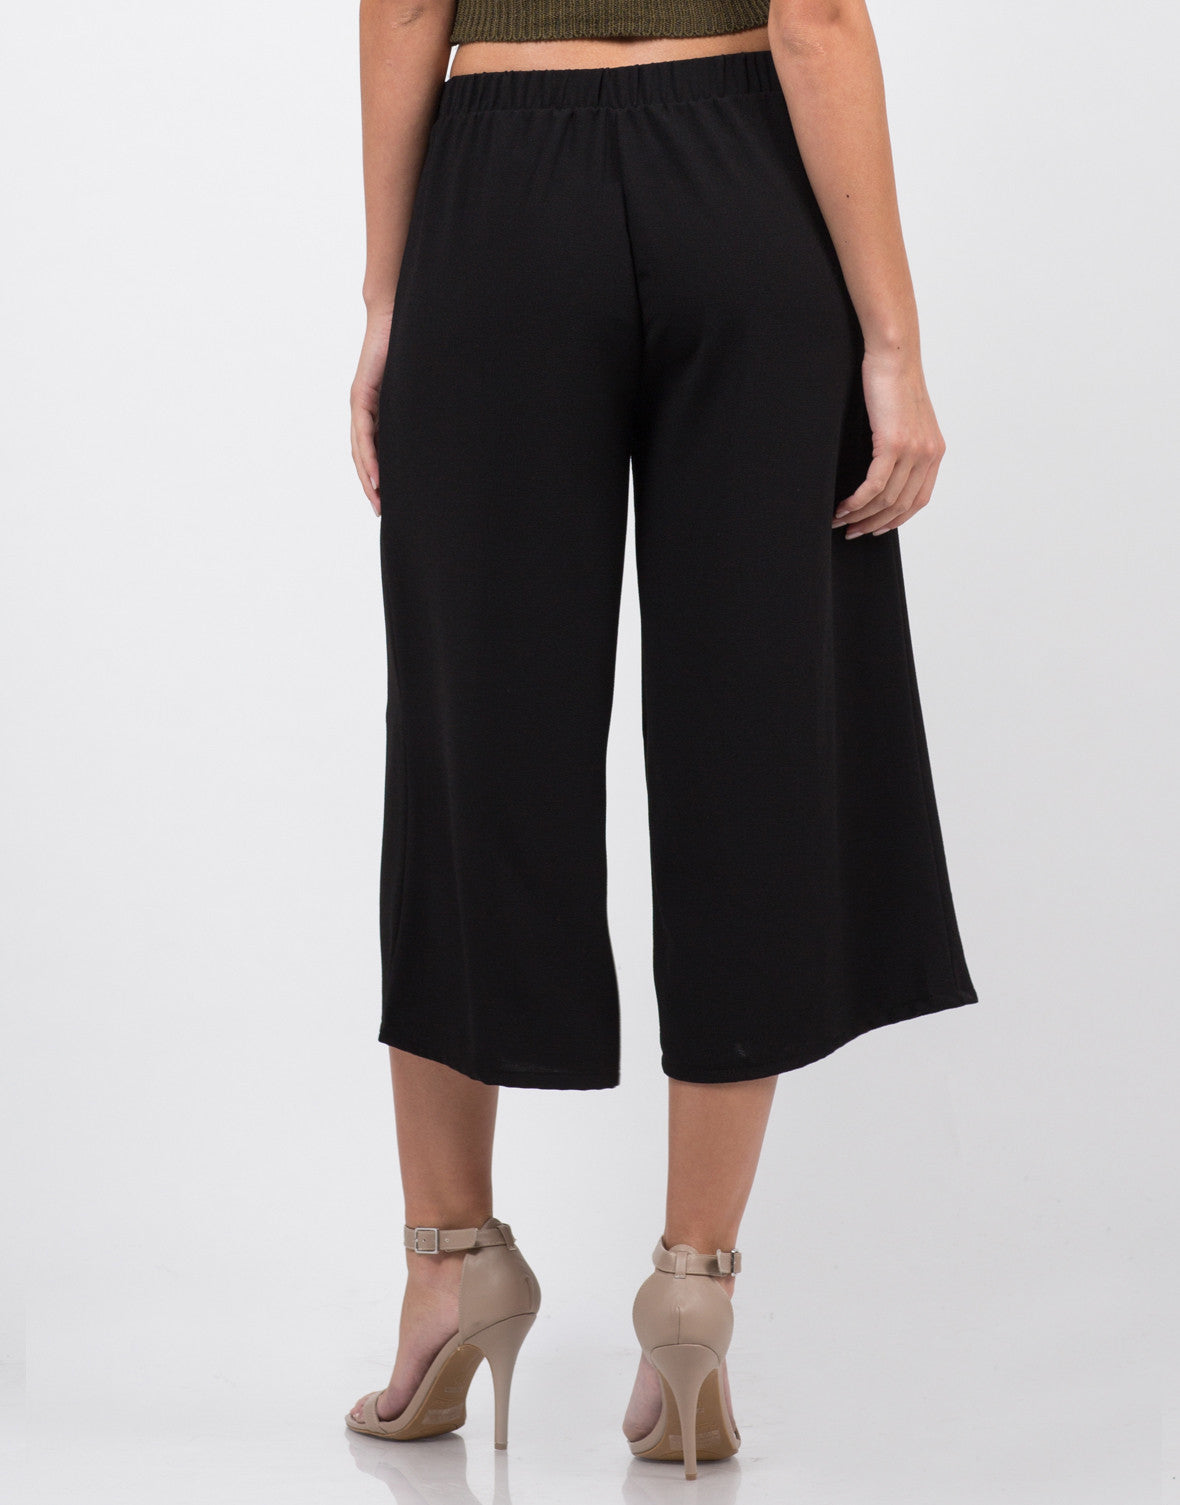 Back View of Mid Waist Culottes